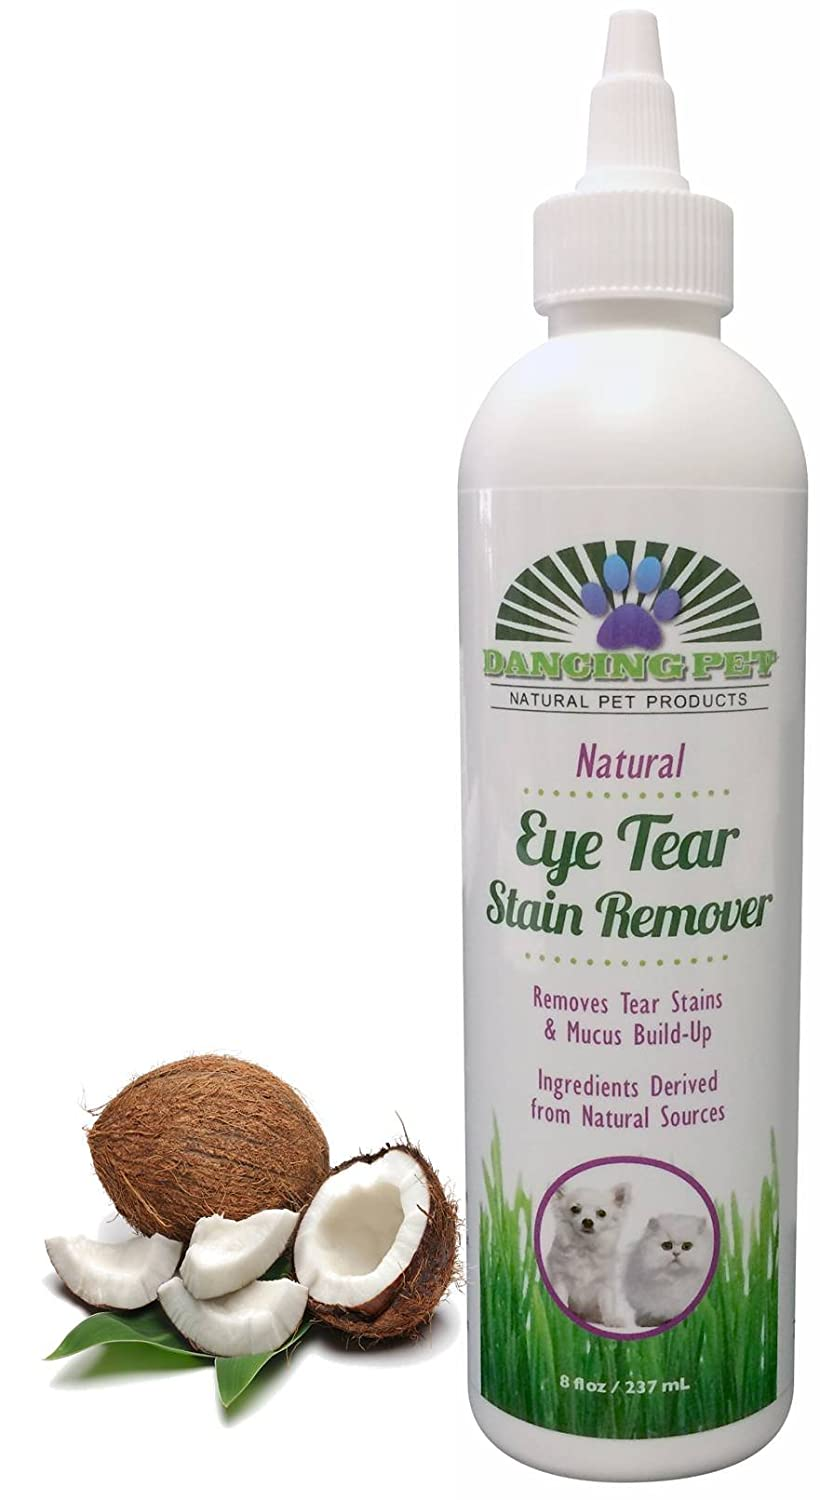 Eye Tear Stain Remover Natural & Safe – Removes Fur Stains + Mucus, Protein Buildup, Boogers Gunk & Goop for Clean Eyes, Mouth, Paws on Dogs & Cats – Guaranteed – by Dancing Pet - 8 Ounces